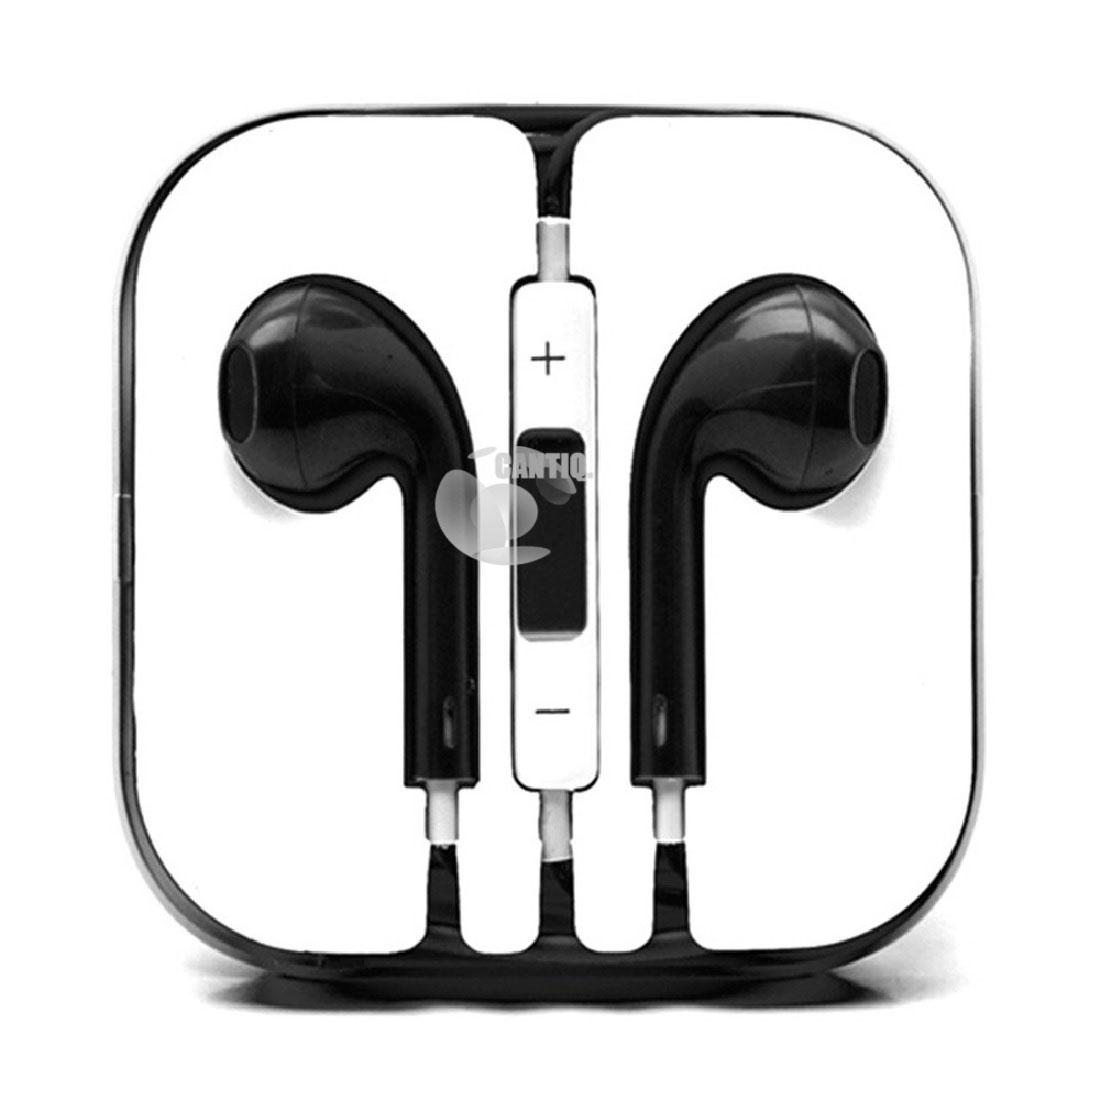 ... Icantiq Handsfree For Apple iPhone 5 5c 5s Headset Earphone Colour For All